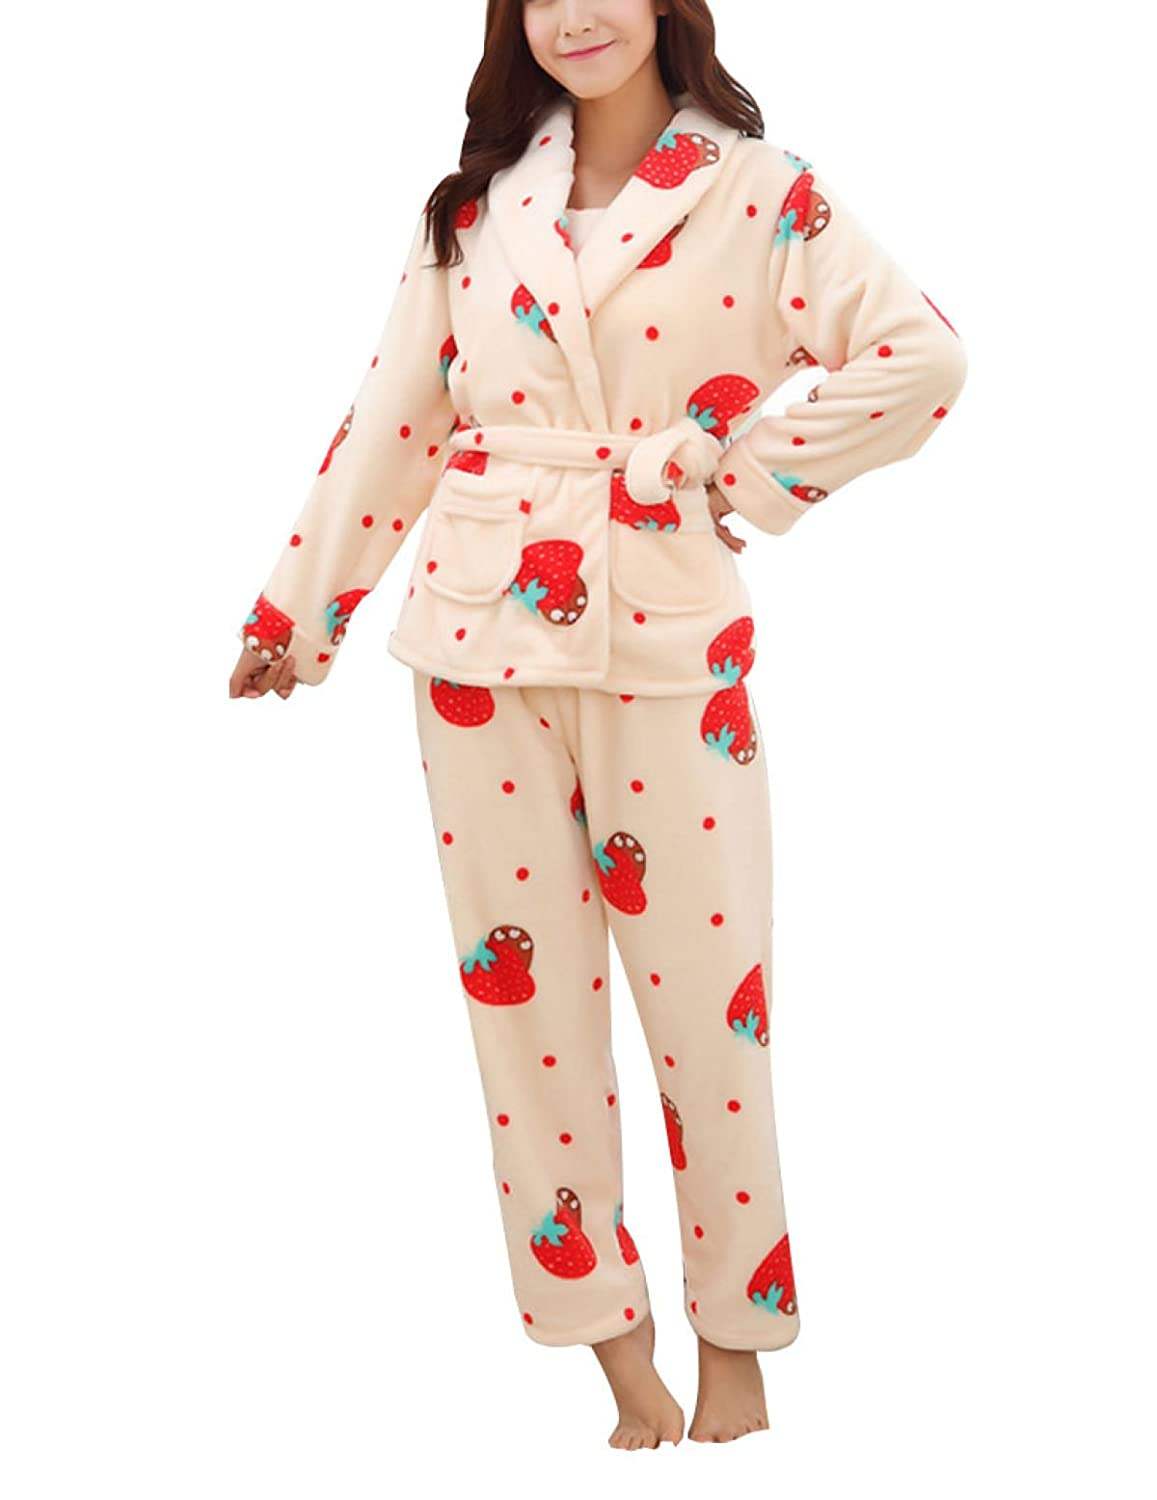 QPALZM, Autumn And Winter Flannel Printed Three-piece Warm Pajamas